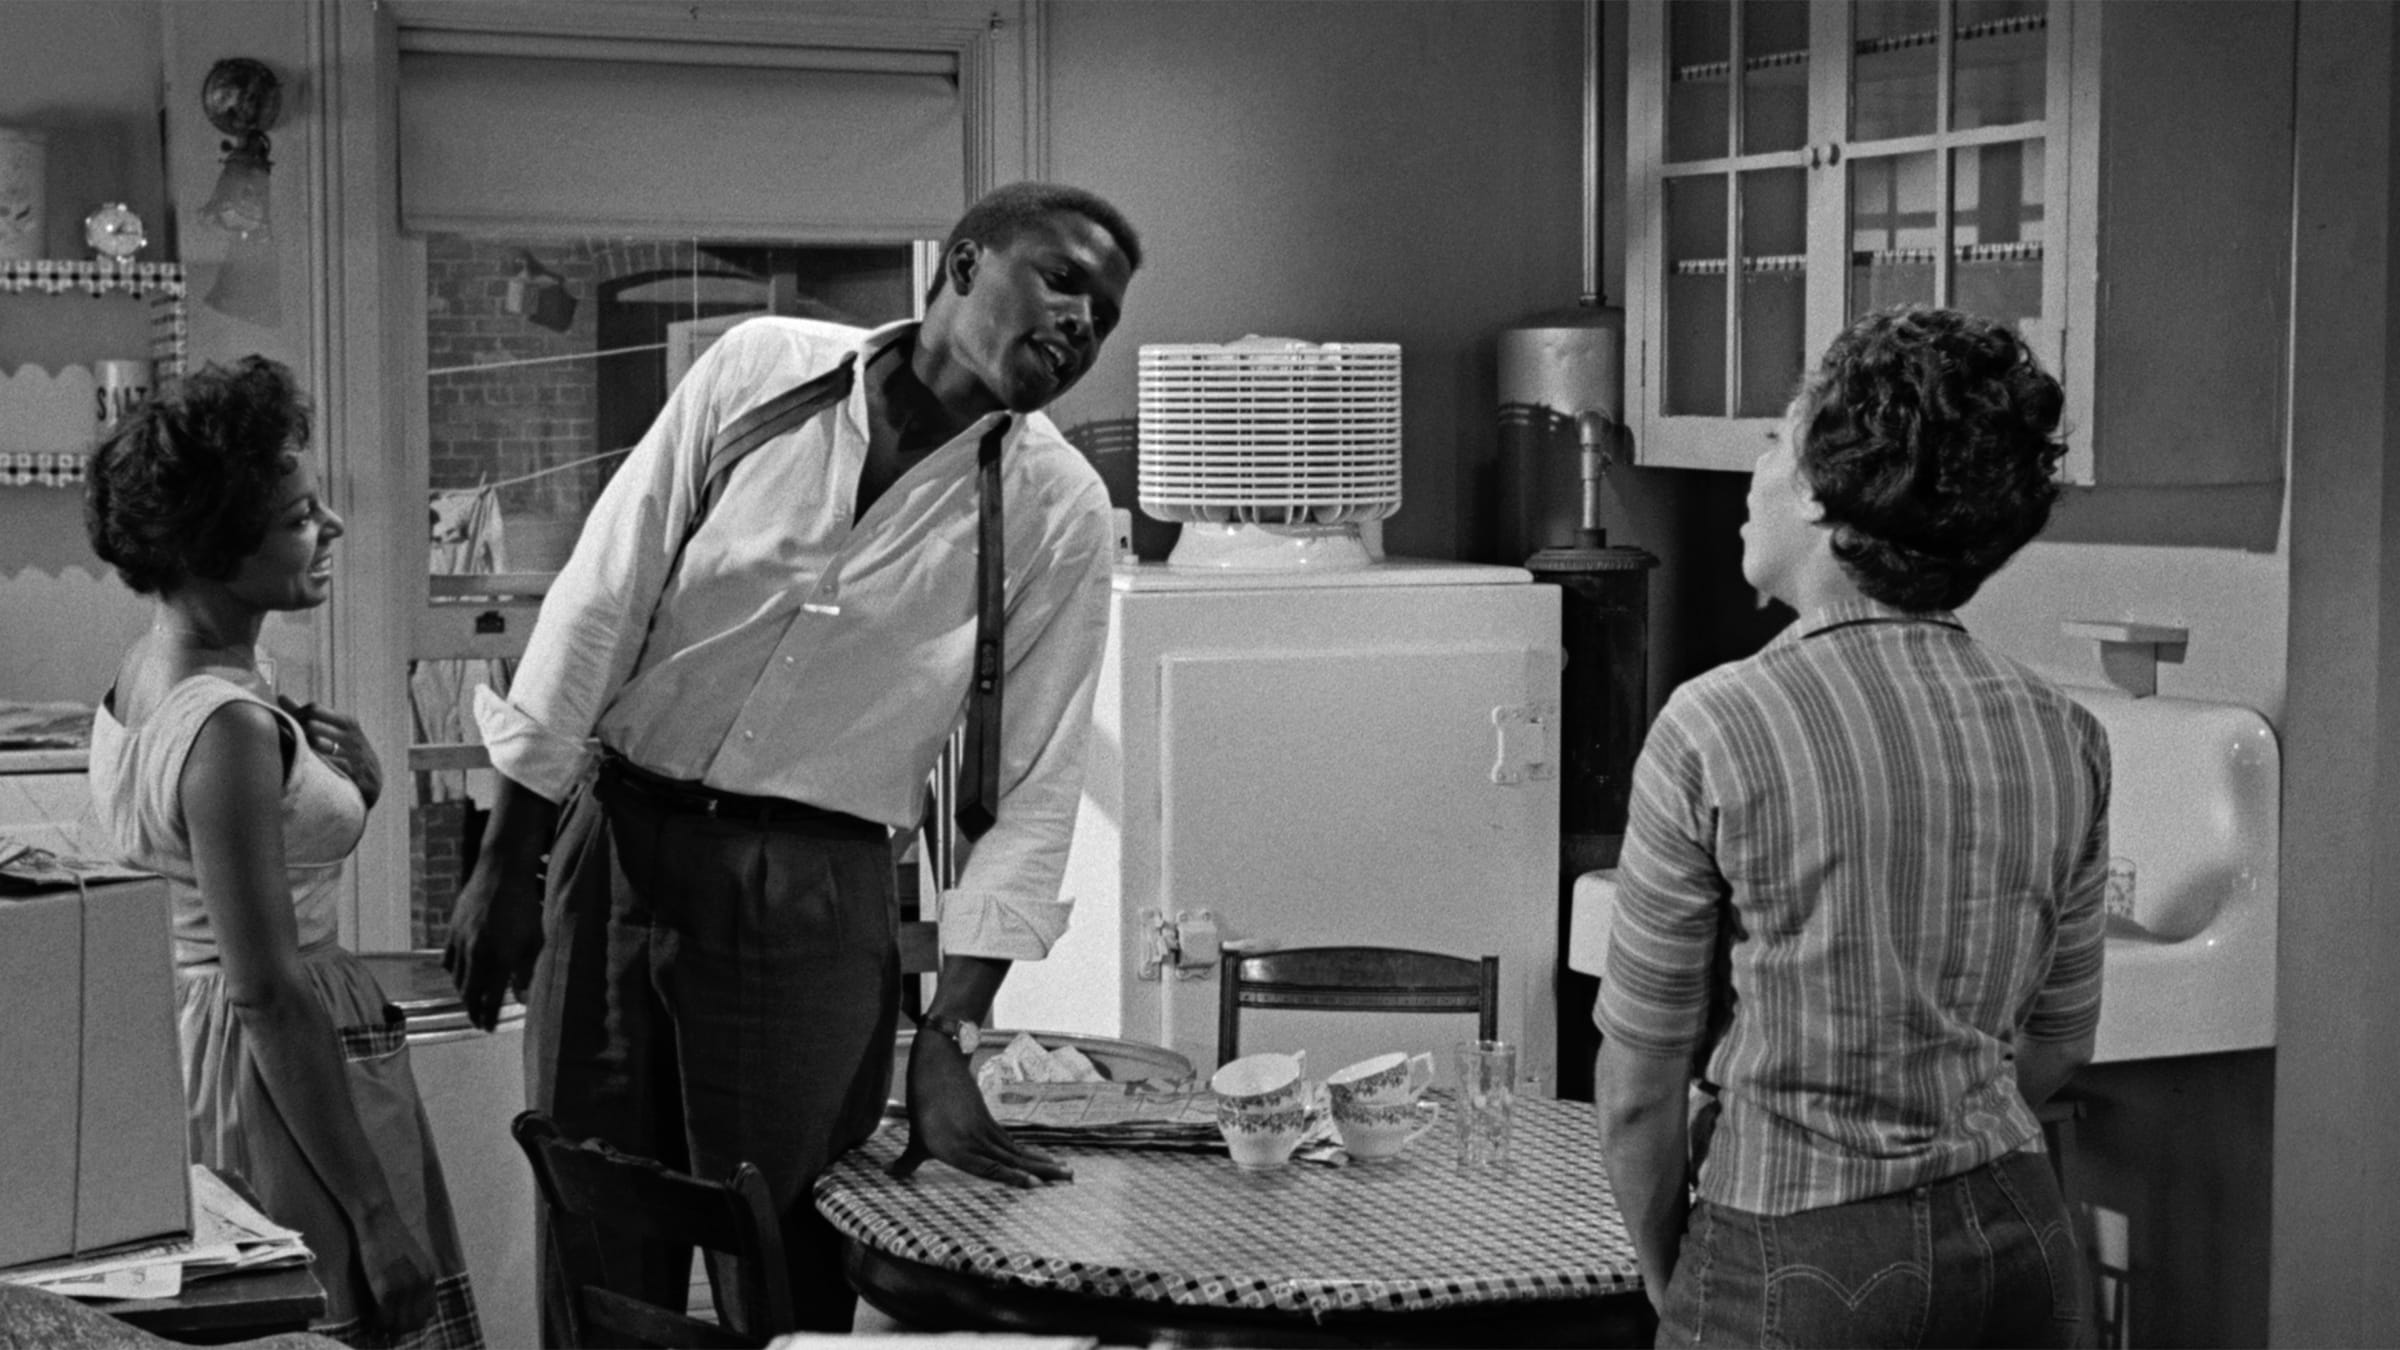 Columbia Business School Essay The Crowning Achievement Of This Film Version Of A Raisin In The Sun Is Its  Very Fidelity To Its Theatrical Origins The Way It Successfully Brings To  The  Good Science Essay Topics also Example Essay English Mutations Of Memory In Hiroshima Mon Amour  The Current  The  Essay Examples For High School